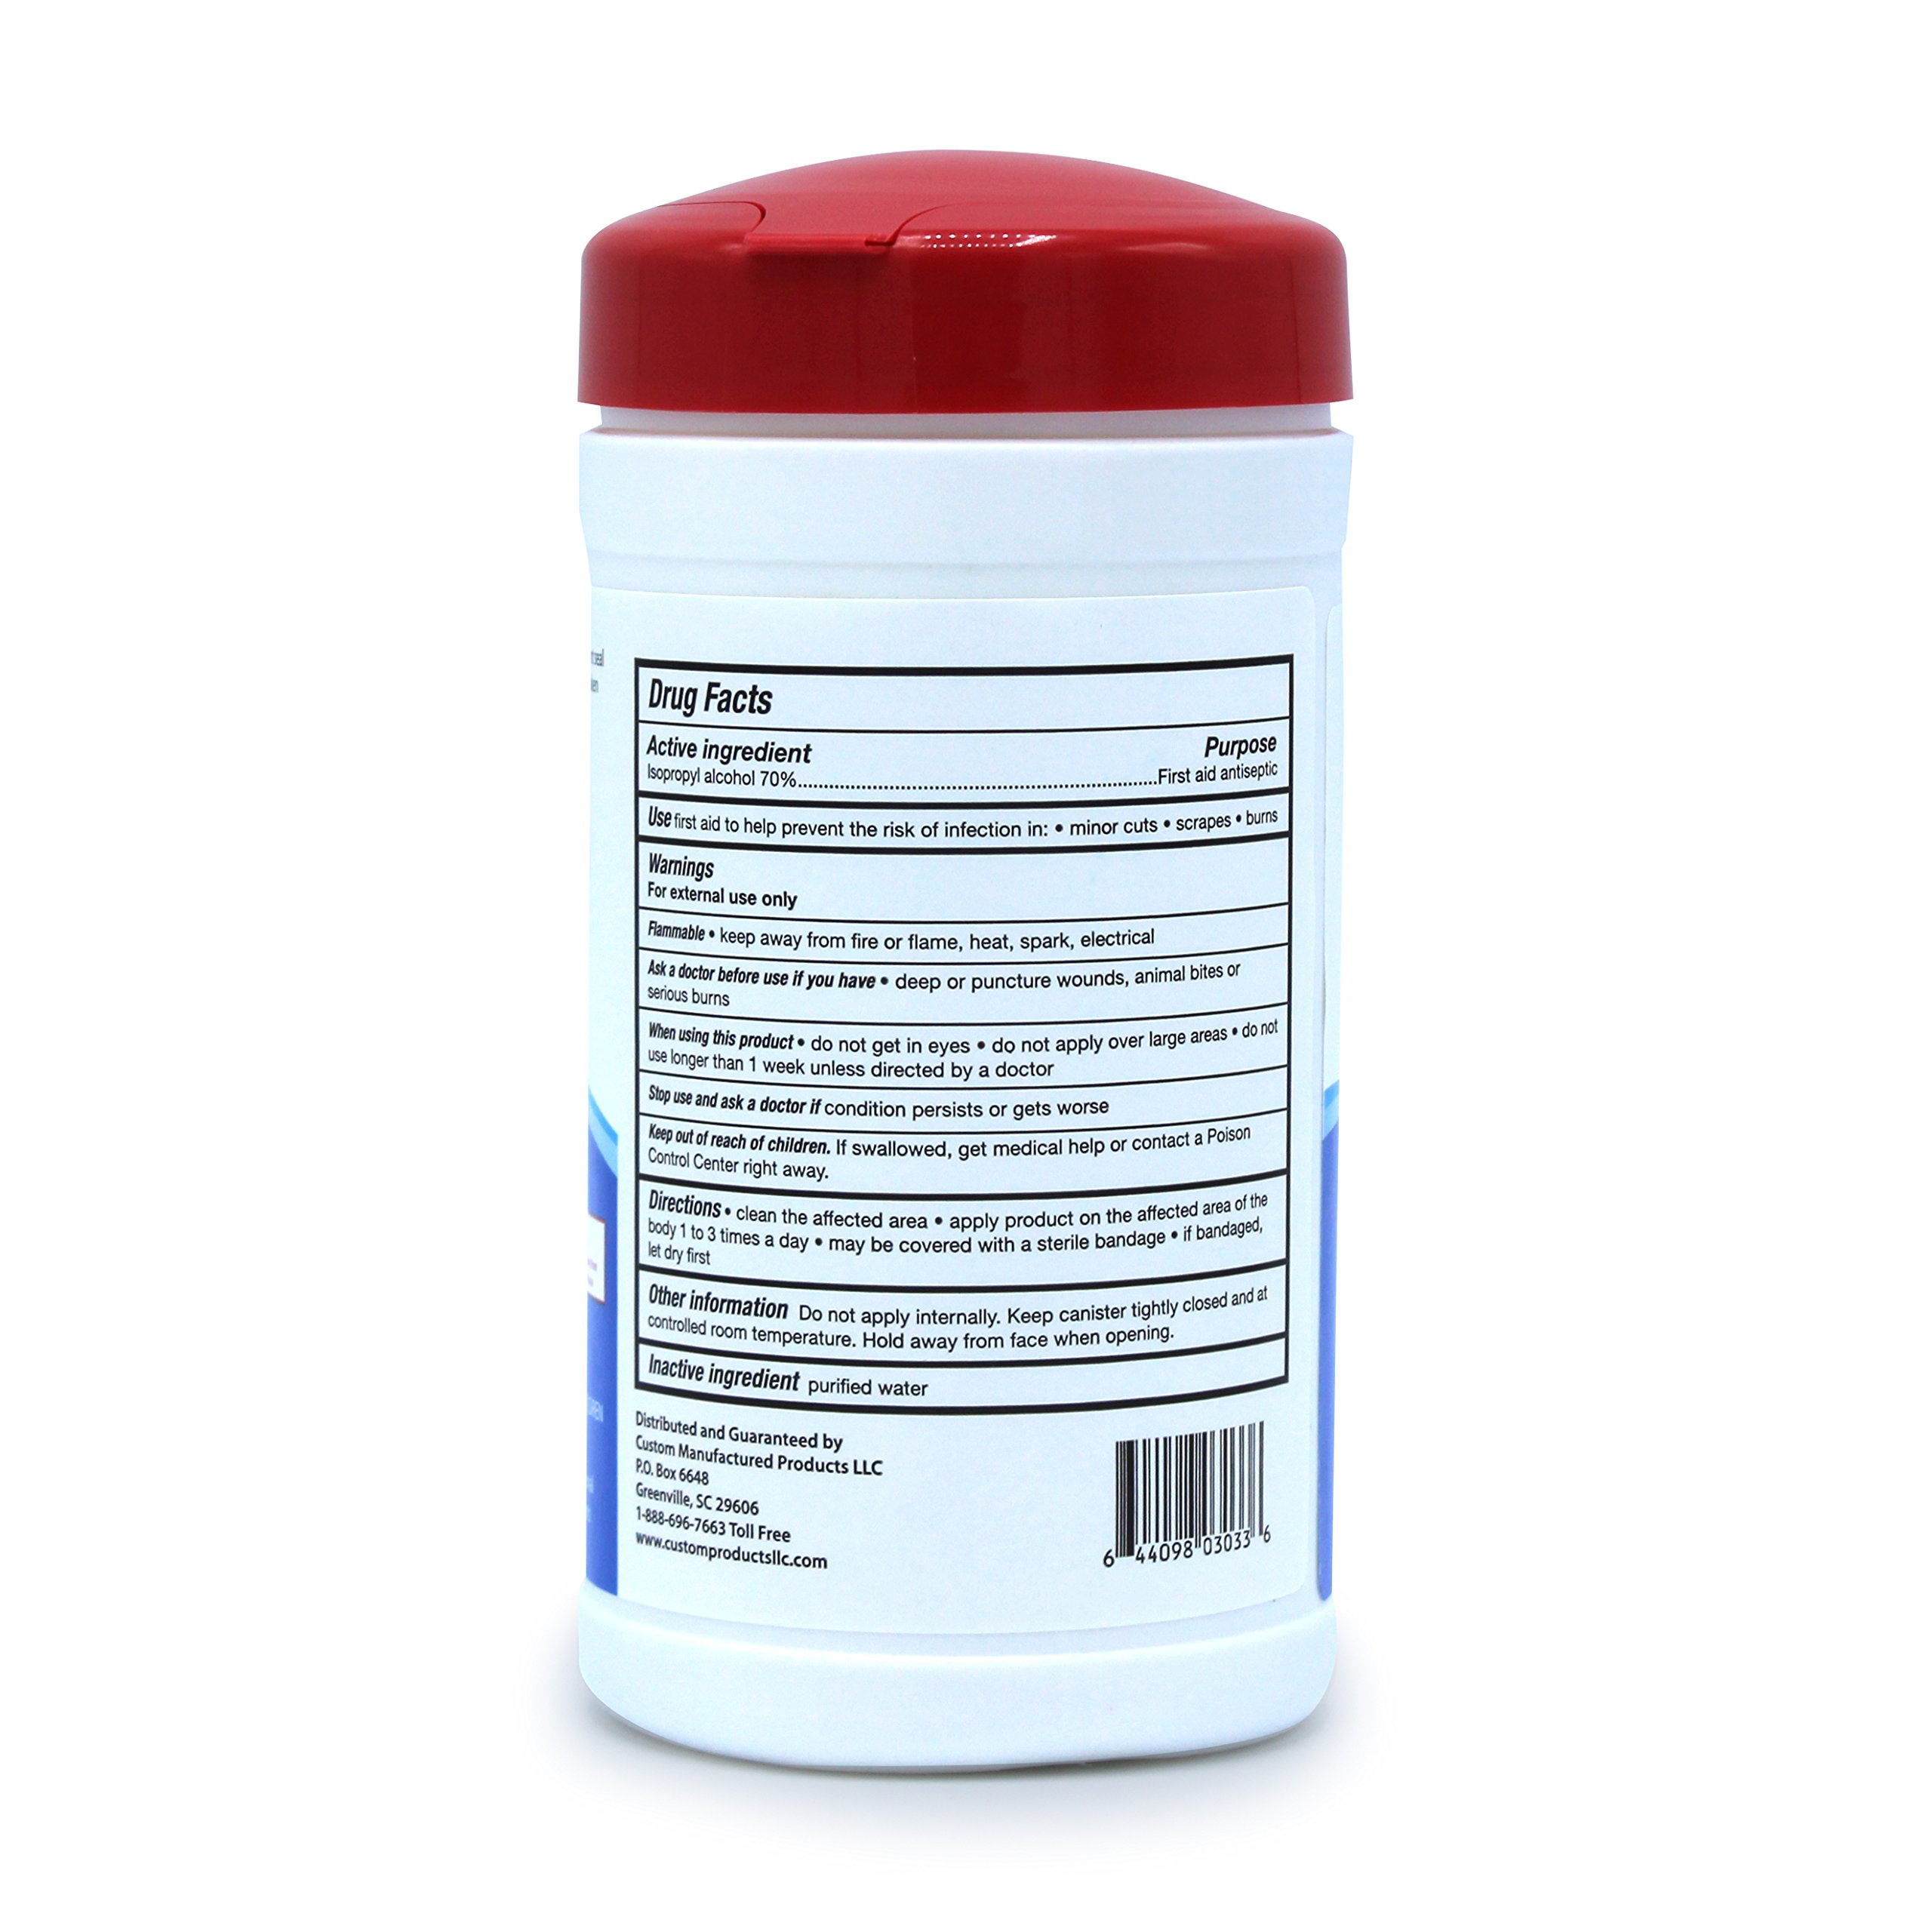 Pharma-C-Wipes 70% Isopropyl Alcohol Wipes, First Aid Antiseptic to Help Prevent the Risk of Infection in Minor Cuts, Scrapes and Burns (6 Canisters of 40 Wipes, 240 Wipes Total) by Pharma-C-WipesTM (Image #2)